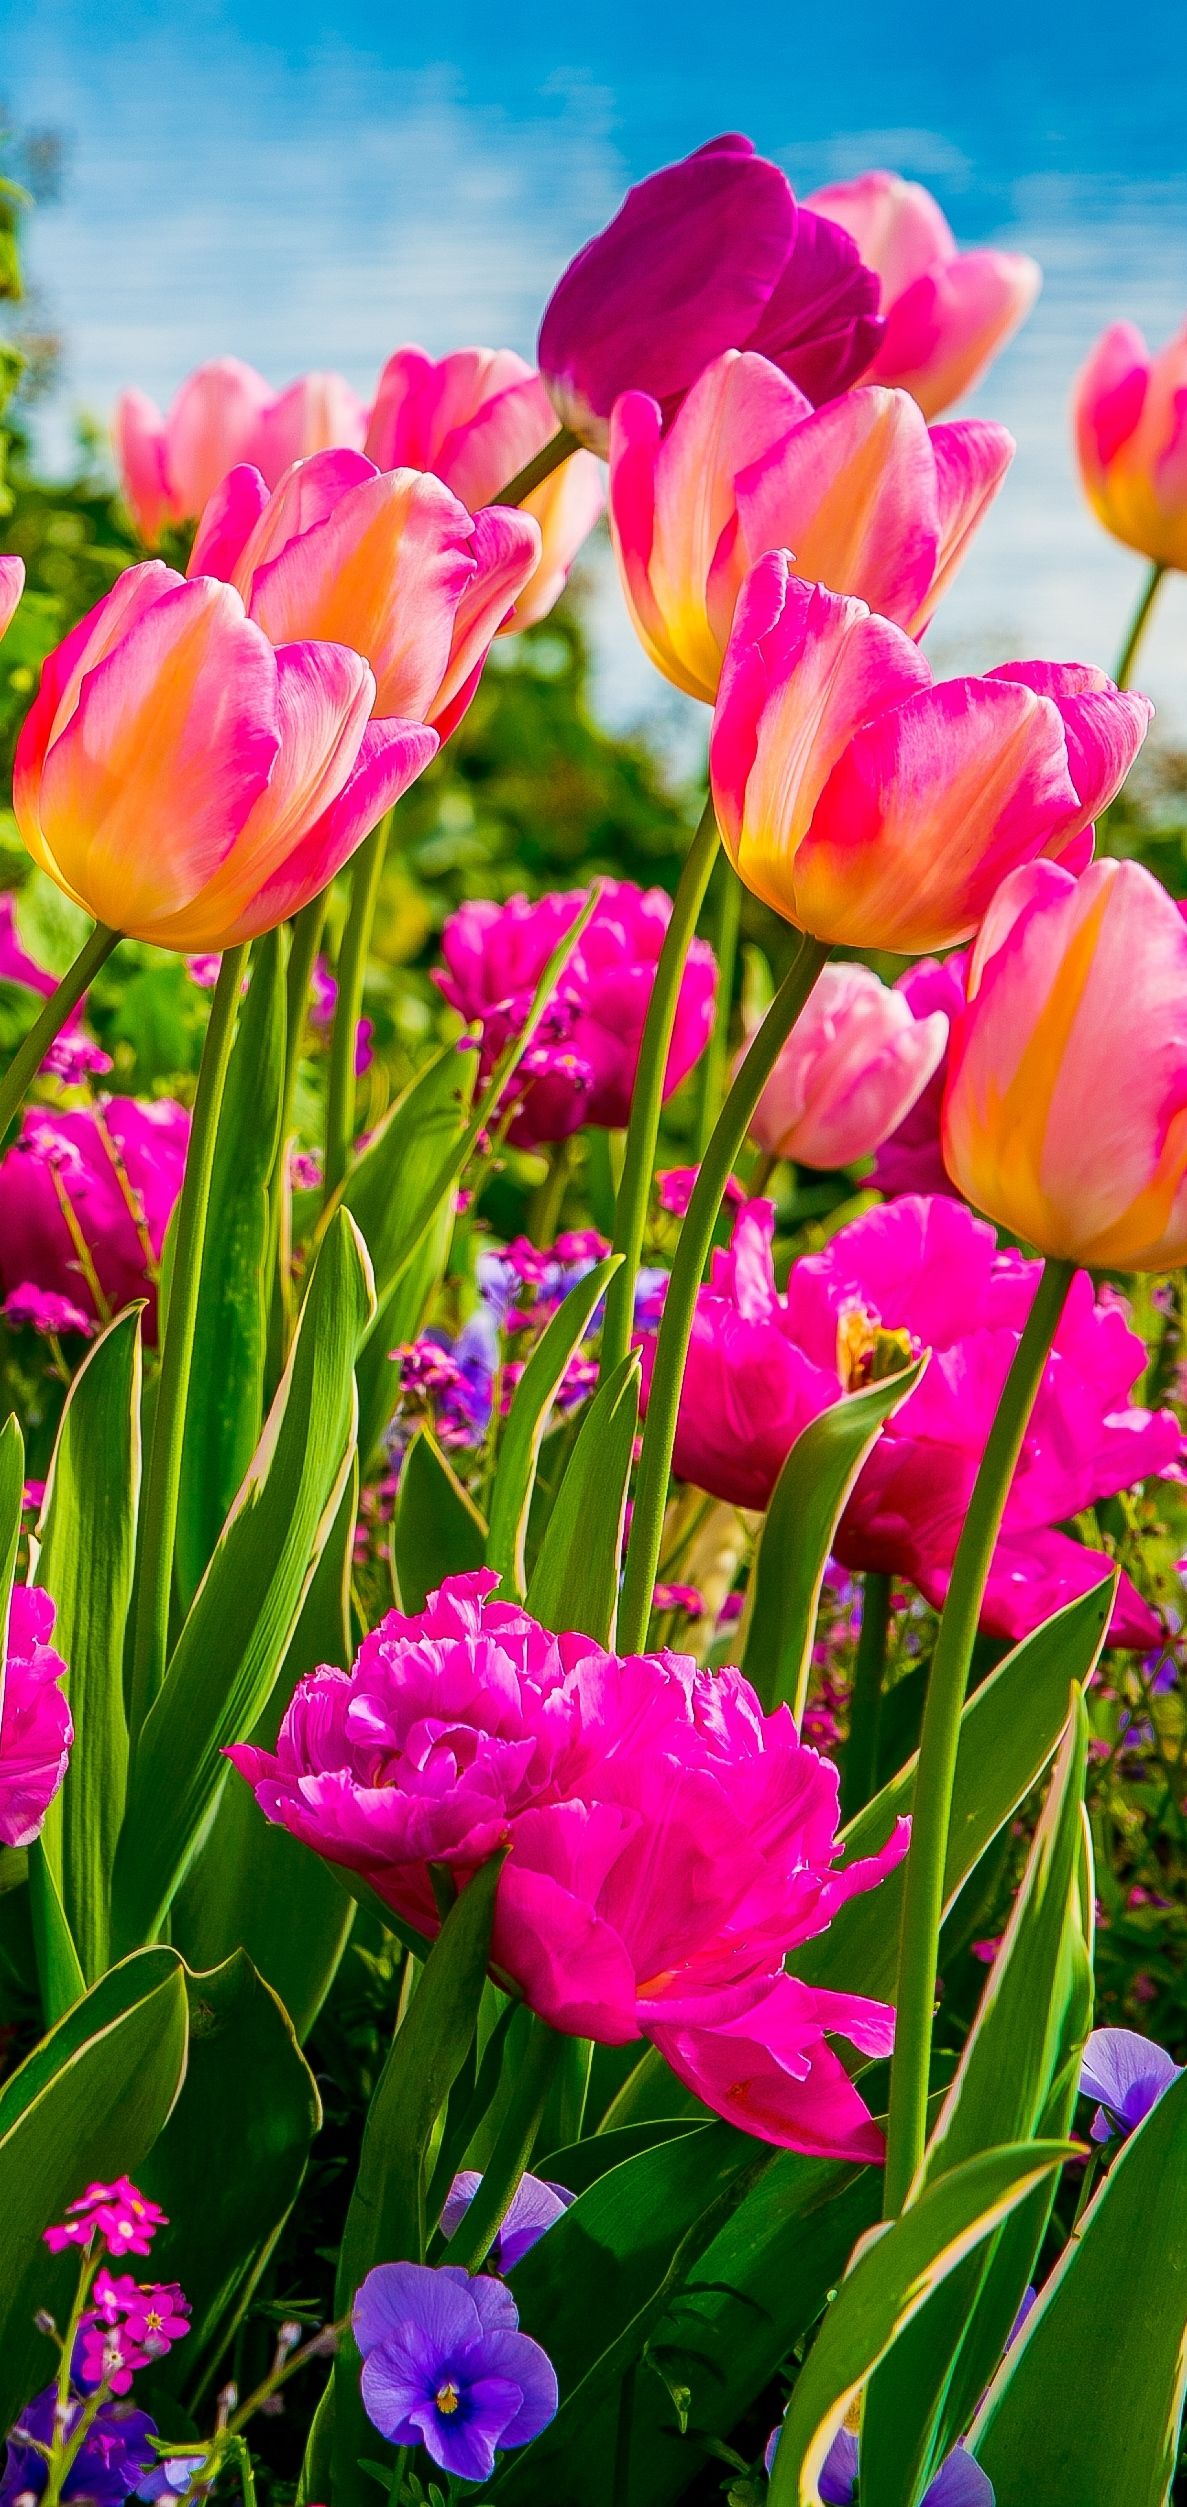 Pink and purple tulips, Flowers on Lake Geneva, with Swiss